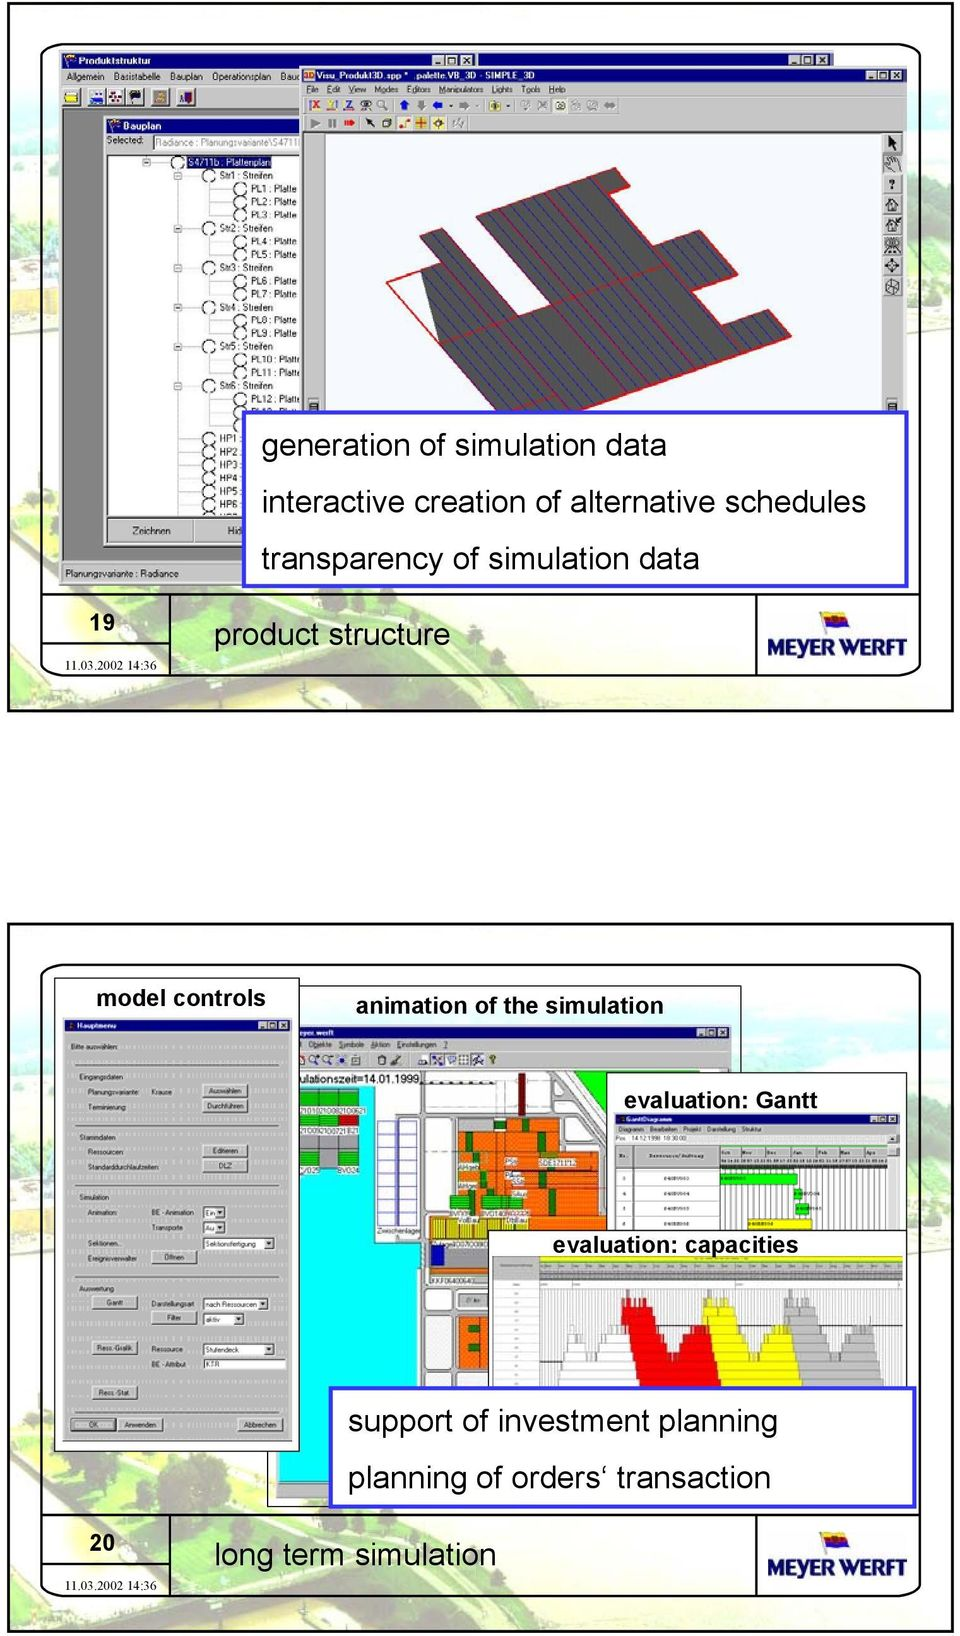 data 19 product structure model controls animation of the simulation evaluation: Gantt